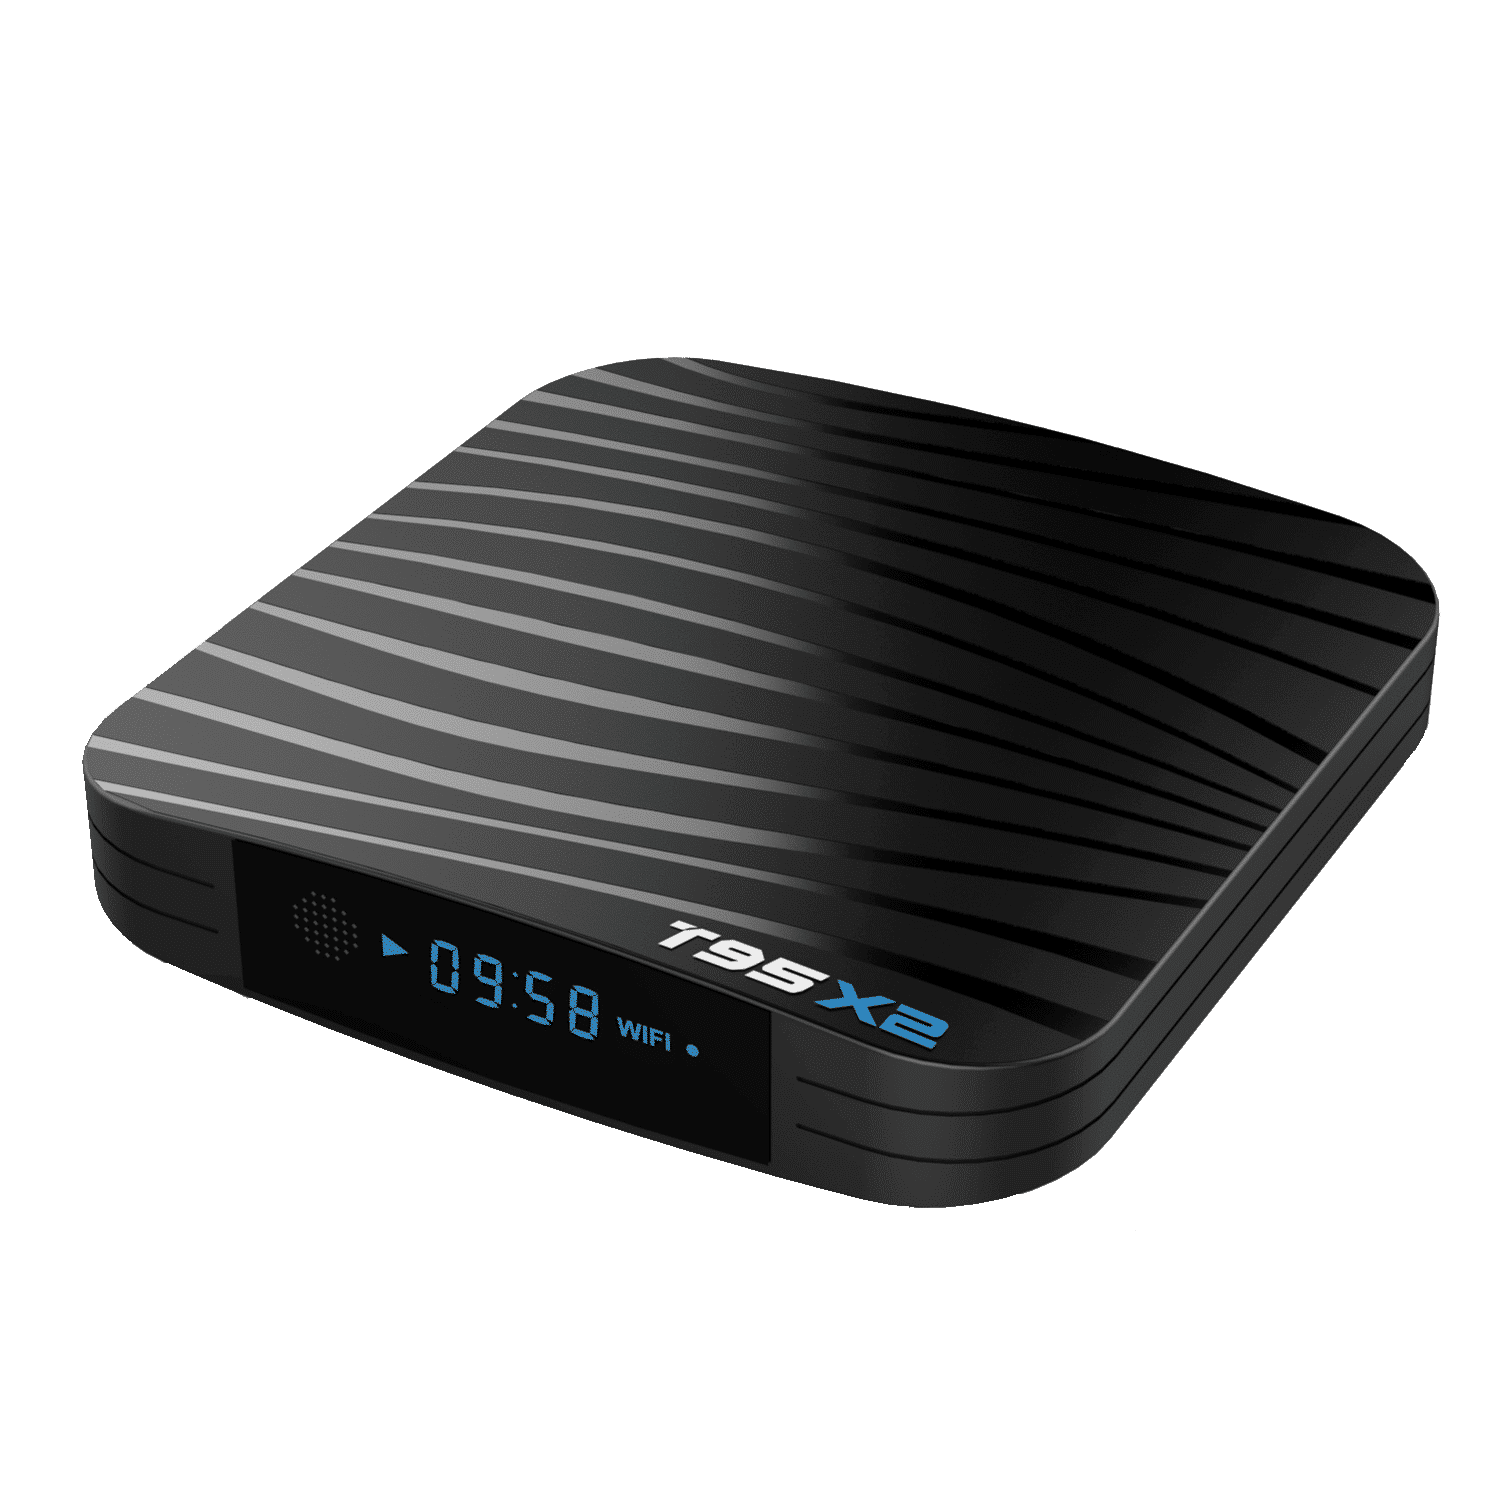 T95X2 Amlogic S905X2 Android 8.1 Oreo Smart TV BOX - Front Top Angle